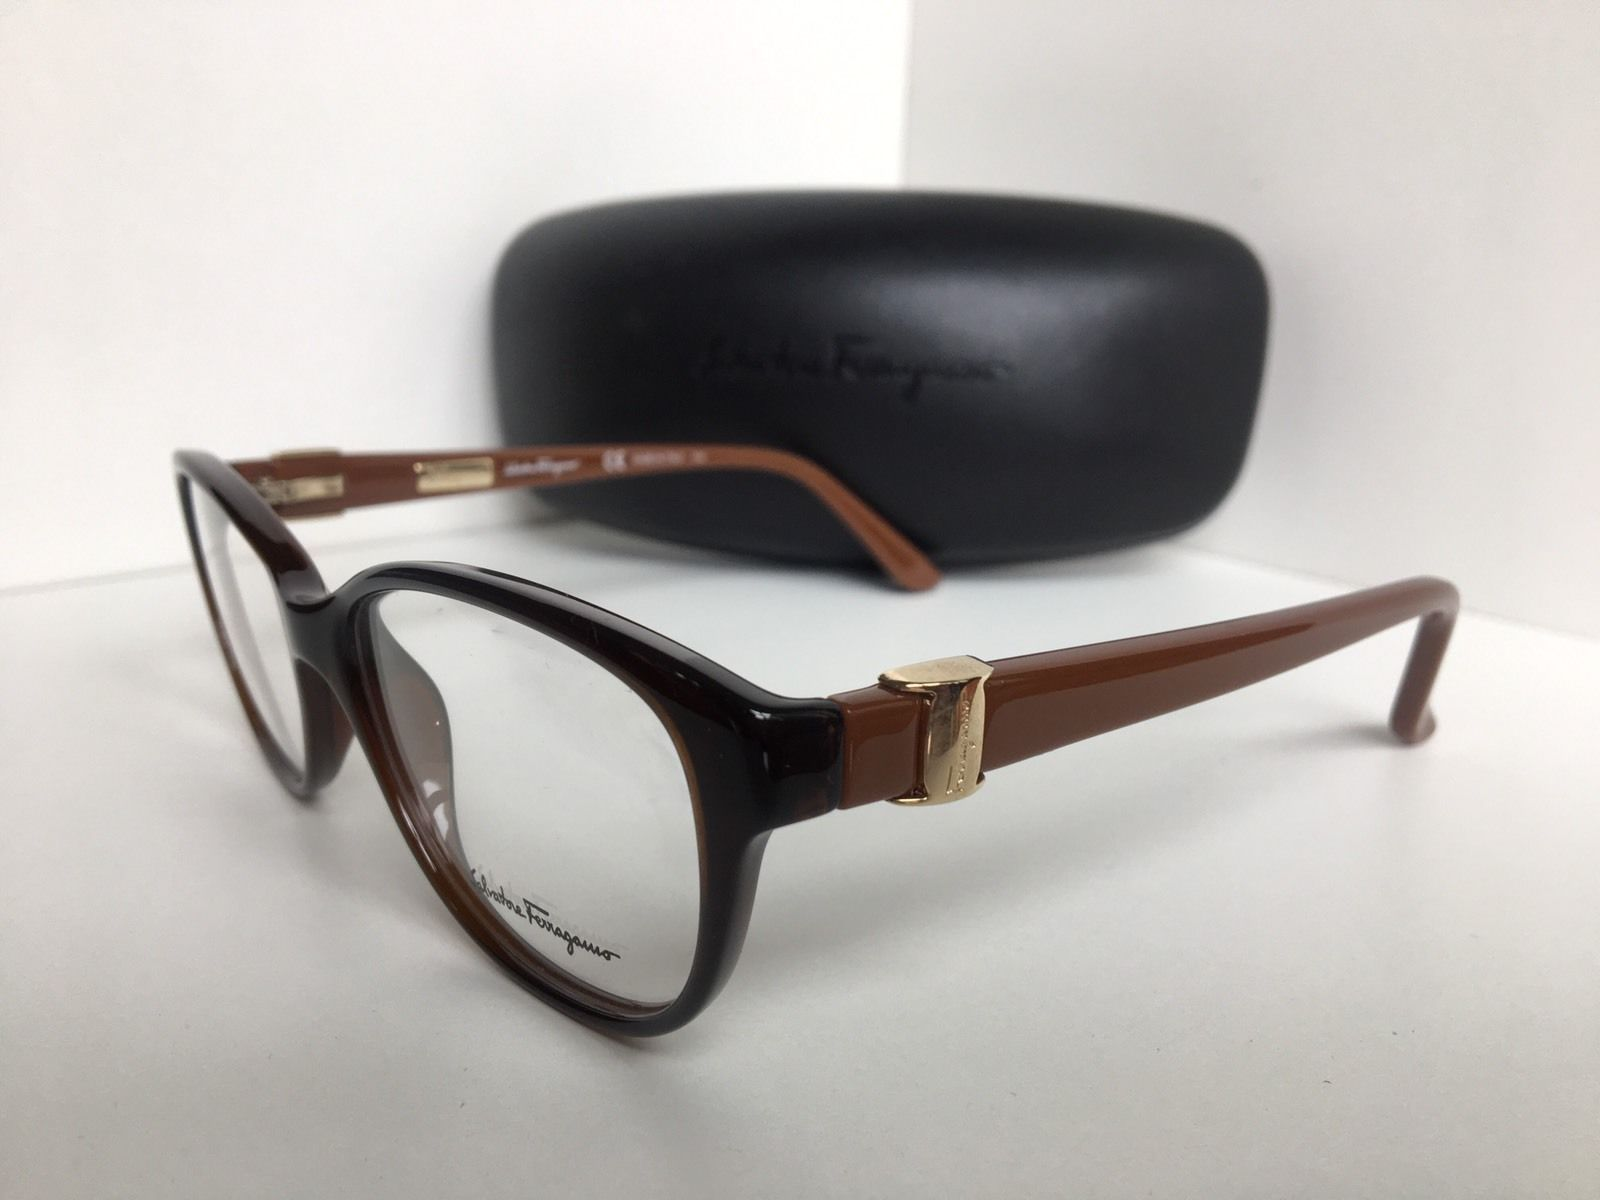 6a32fa78af New Salvatore Ferragamo SF 2711 SF2711 210 52mm Brown Women Eyeglasses Frame